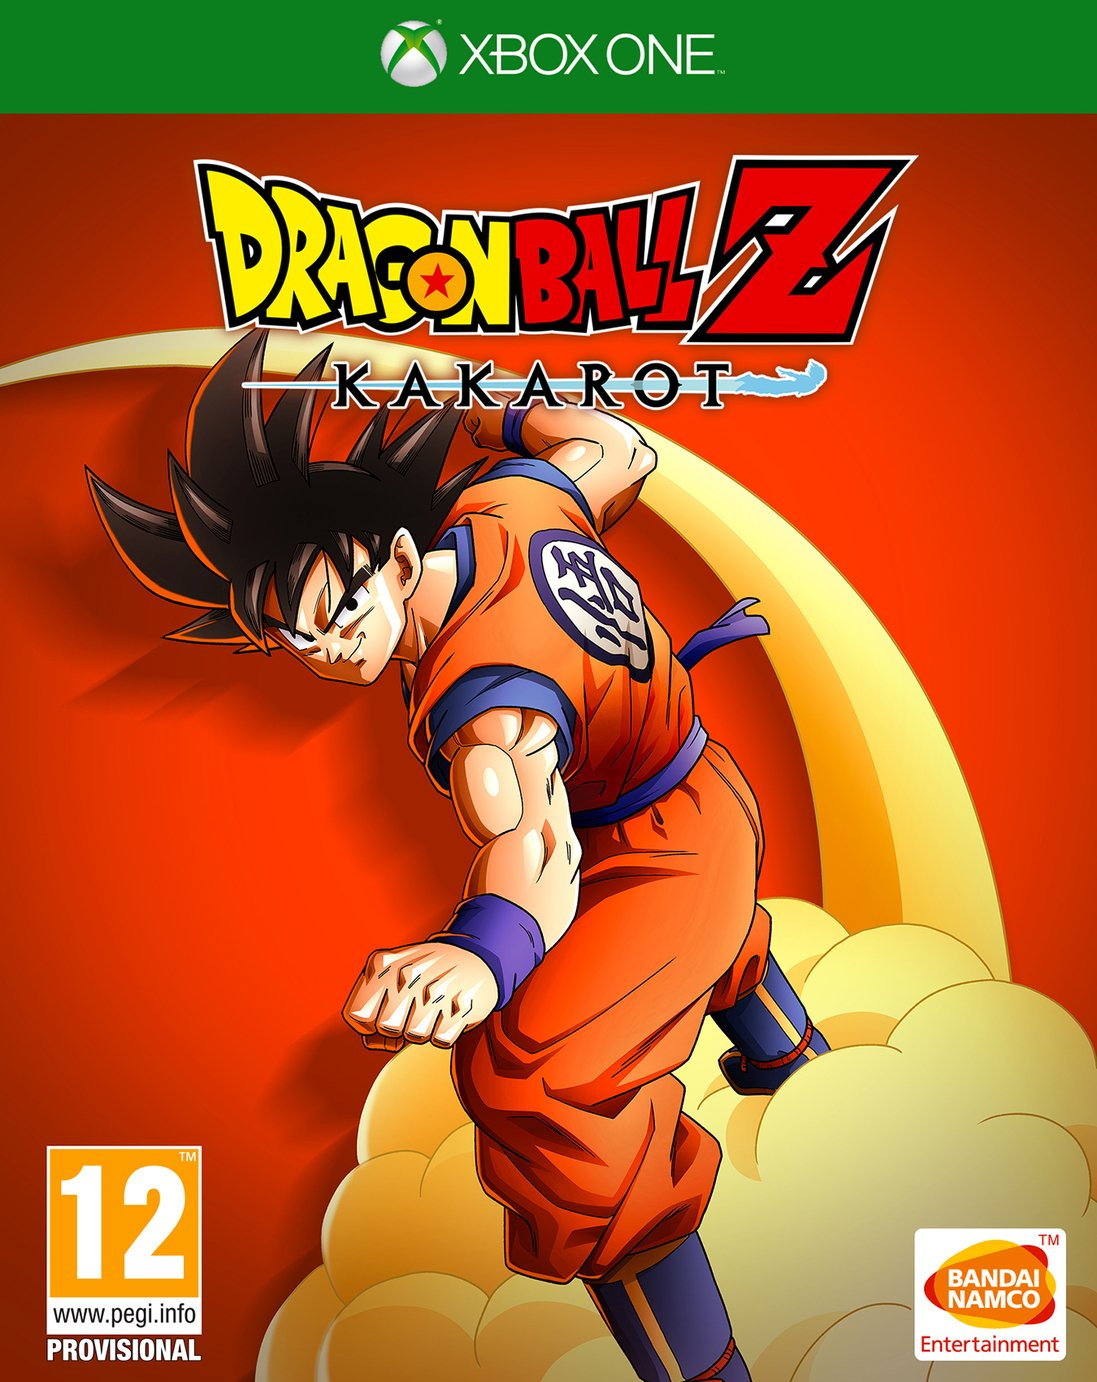 Dragon Ball Z Kakarot Xbox One Pre-Order Game